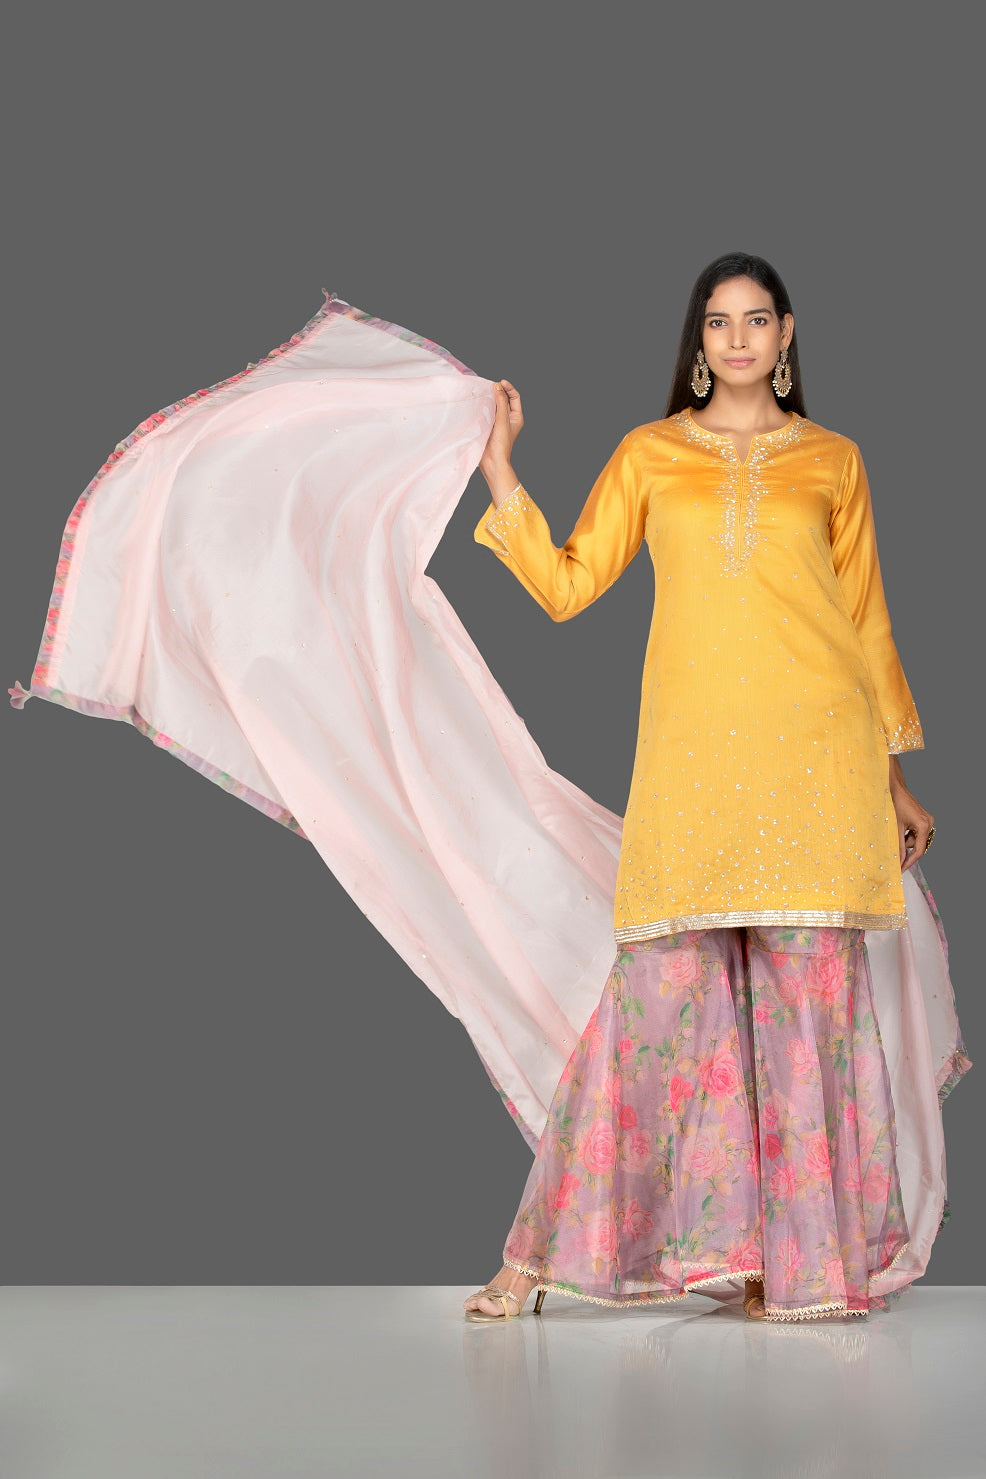 Buy gorgeous yellow embroidered suit online in USA with pink floral palazzo and pink dupatta. Flaunt ethnic fashion on weddings and festive occasions with latest designer lehengas, Indian dresses, traditional Anarkali suits from Pure Elegance Indian clothing store in USA.-full view